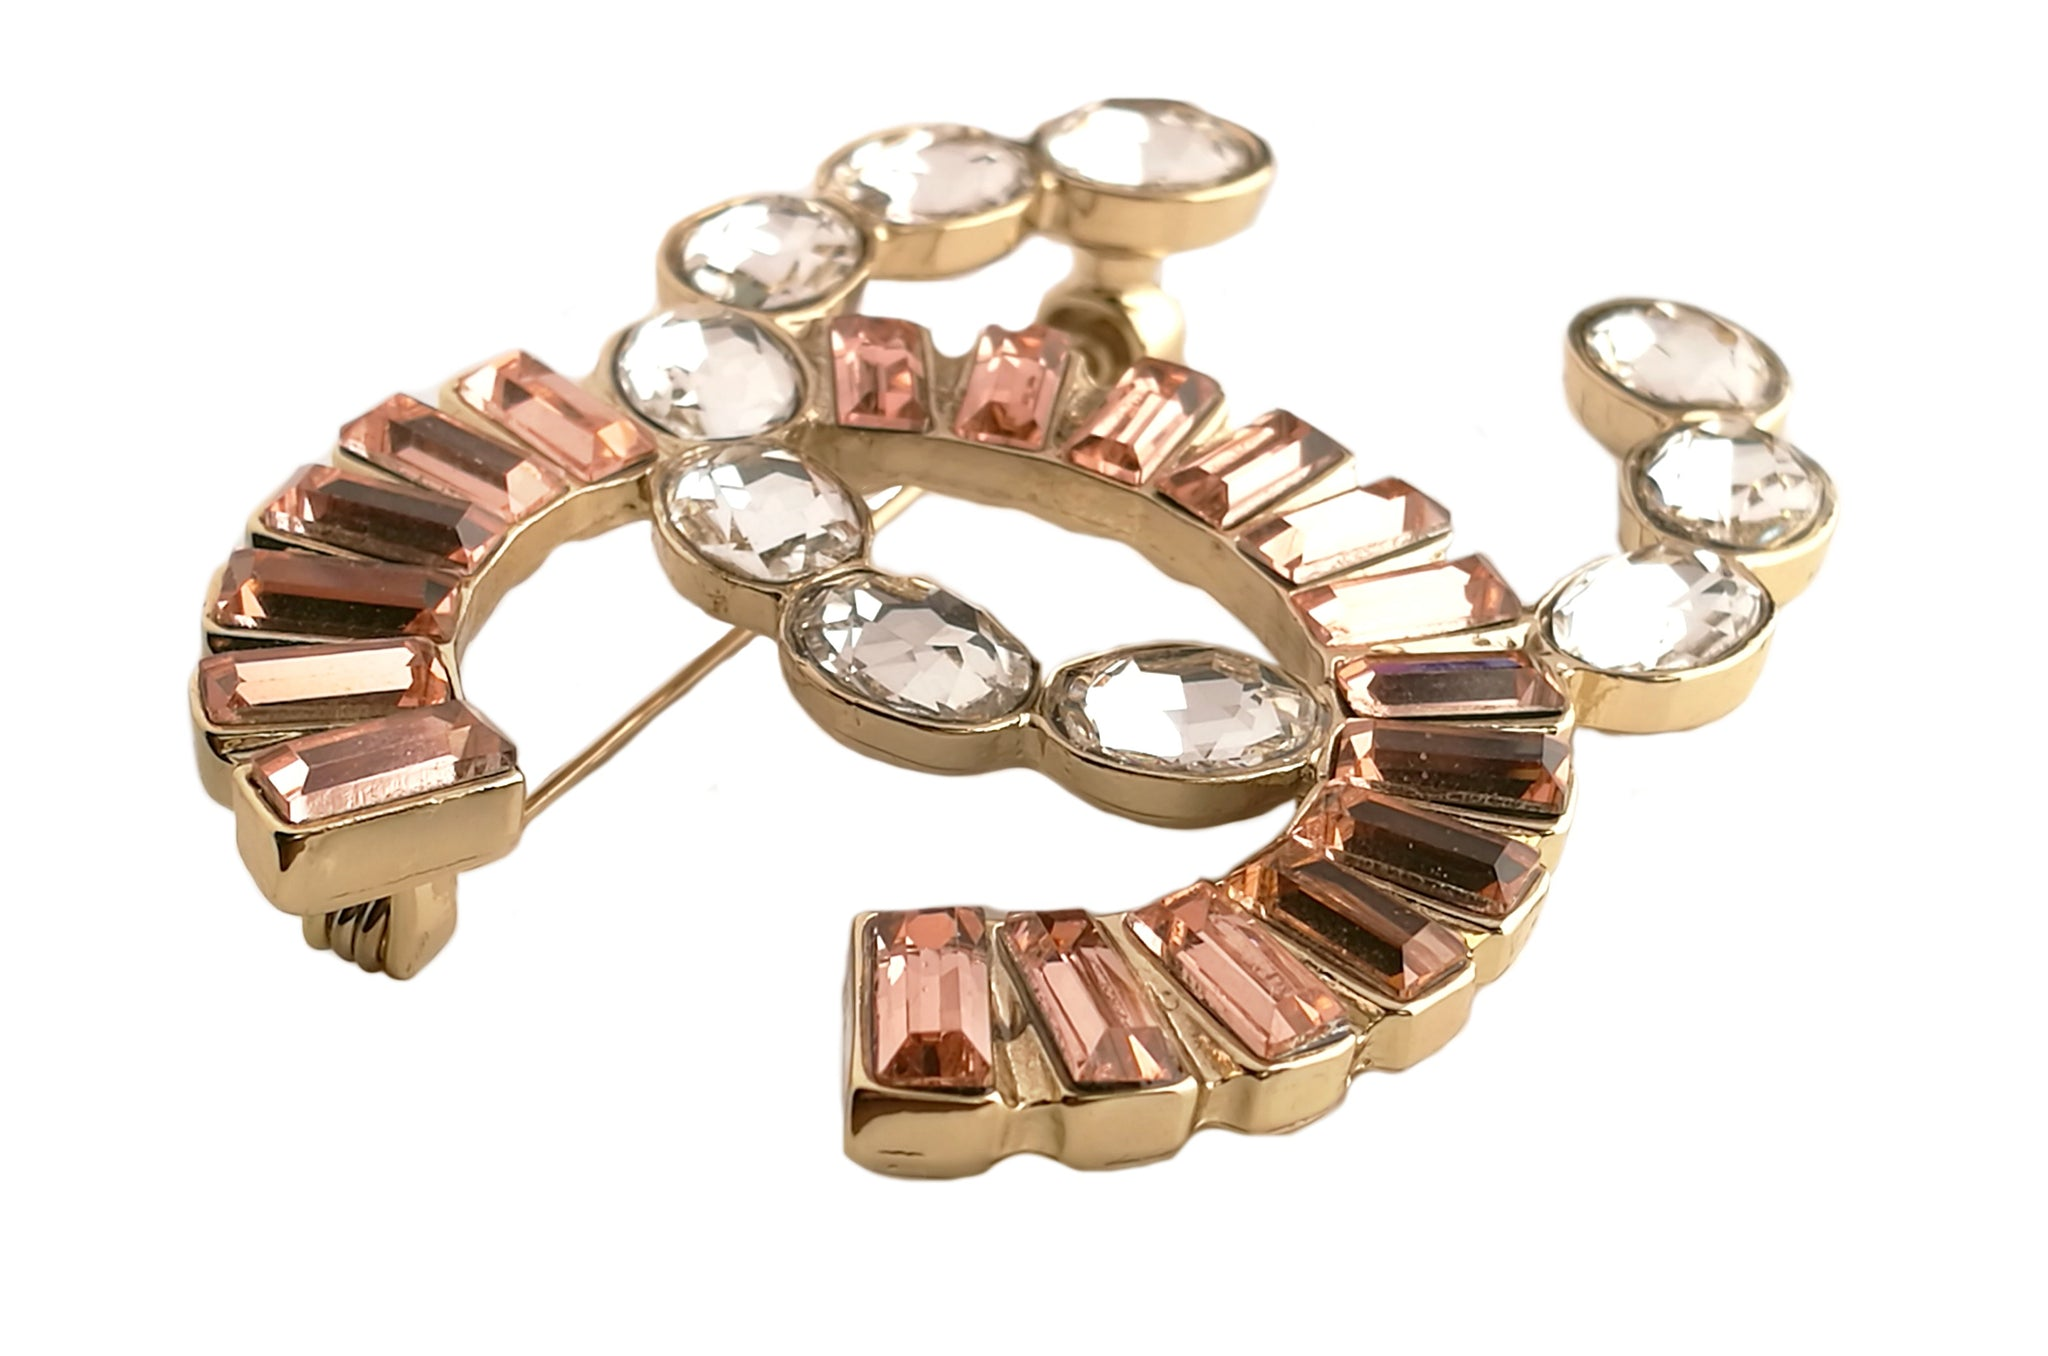 Chanel Salmon Pink Diamante Brooch 2017 Autumn Winter